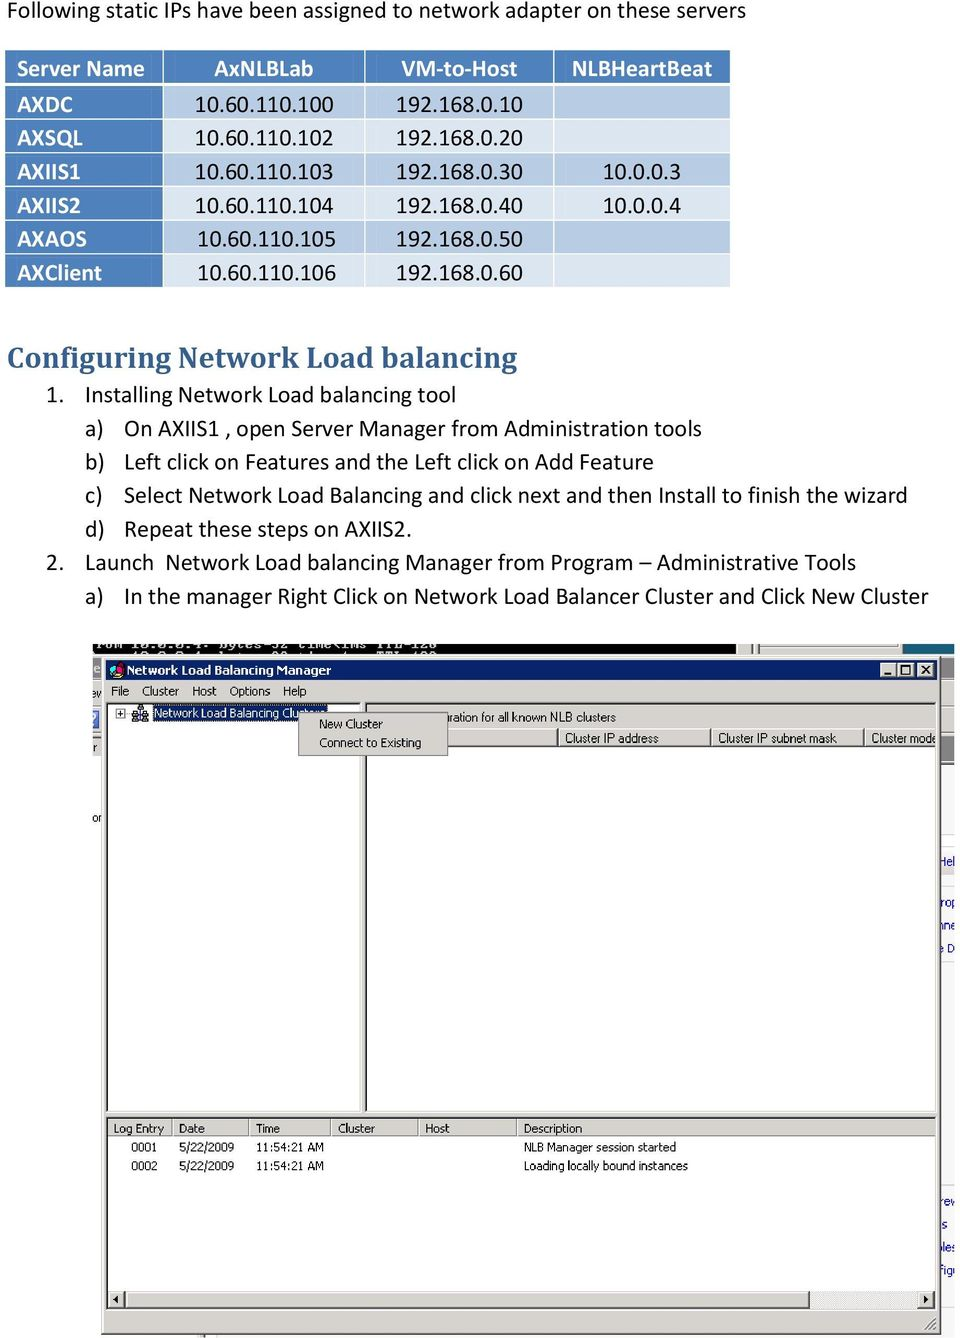 Installing Network Load balancing tool a) On AXIIS1, open Server Manager from Administration tools b) Left click on Features and the Left click on Add Feature c) Select Network Load Balancing and